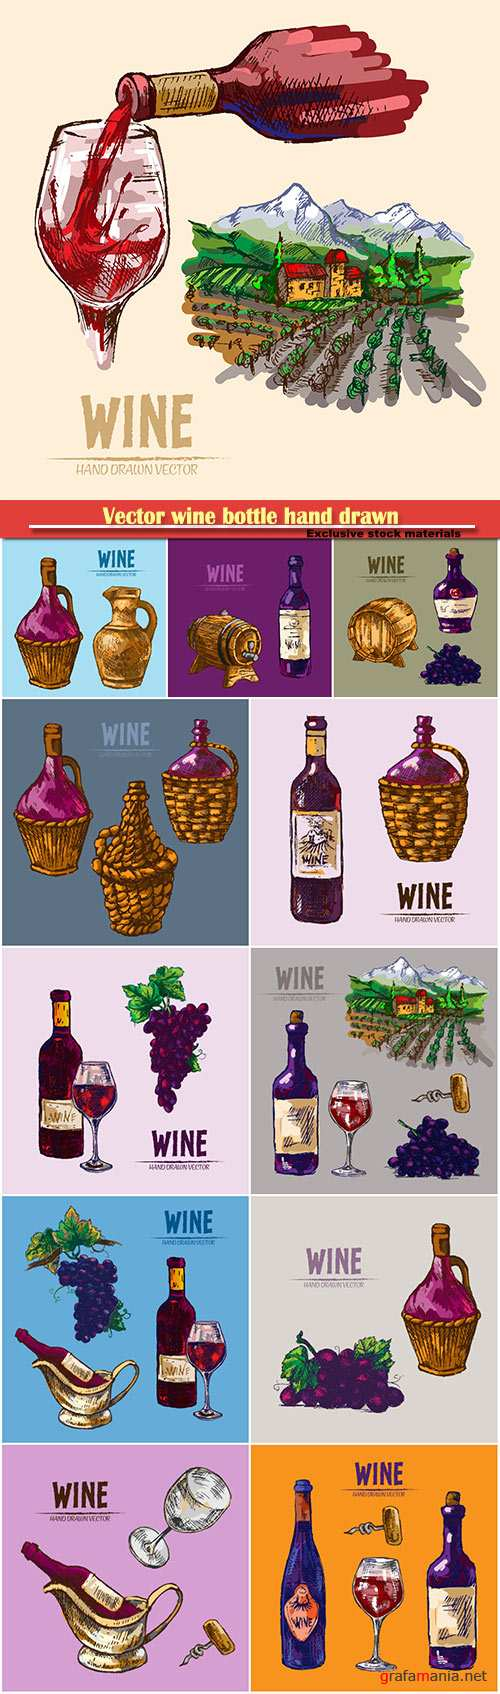 Vector wine bottle hand drawn retro illustration